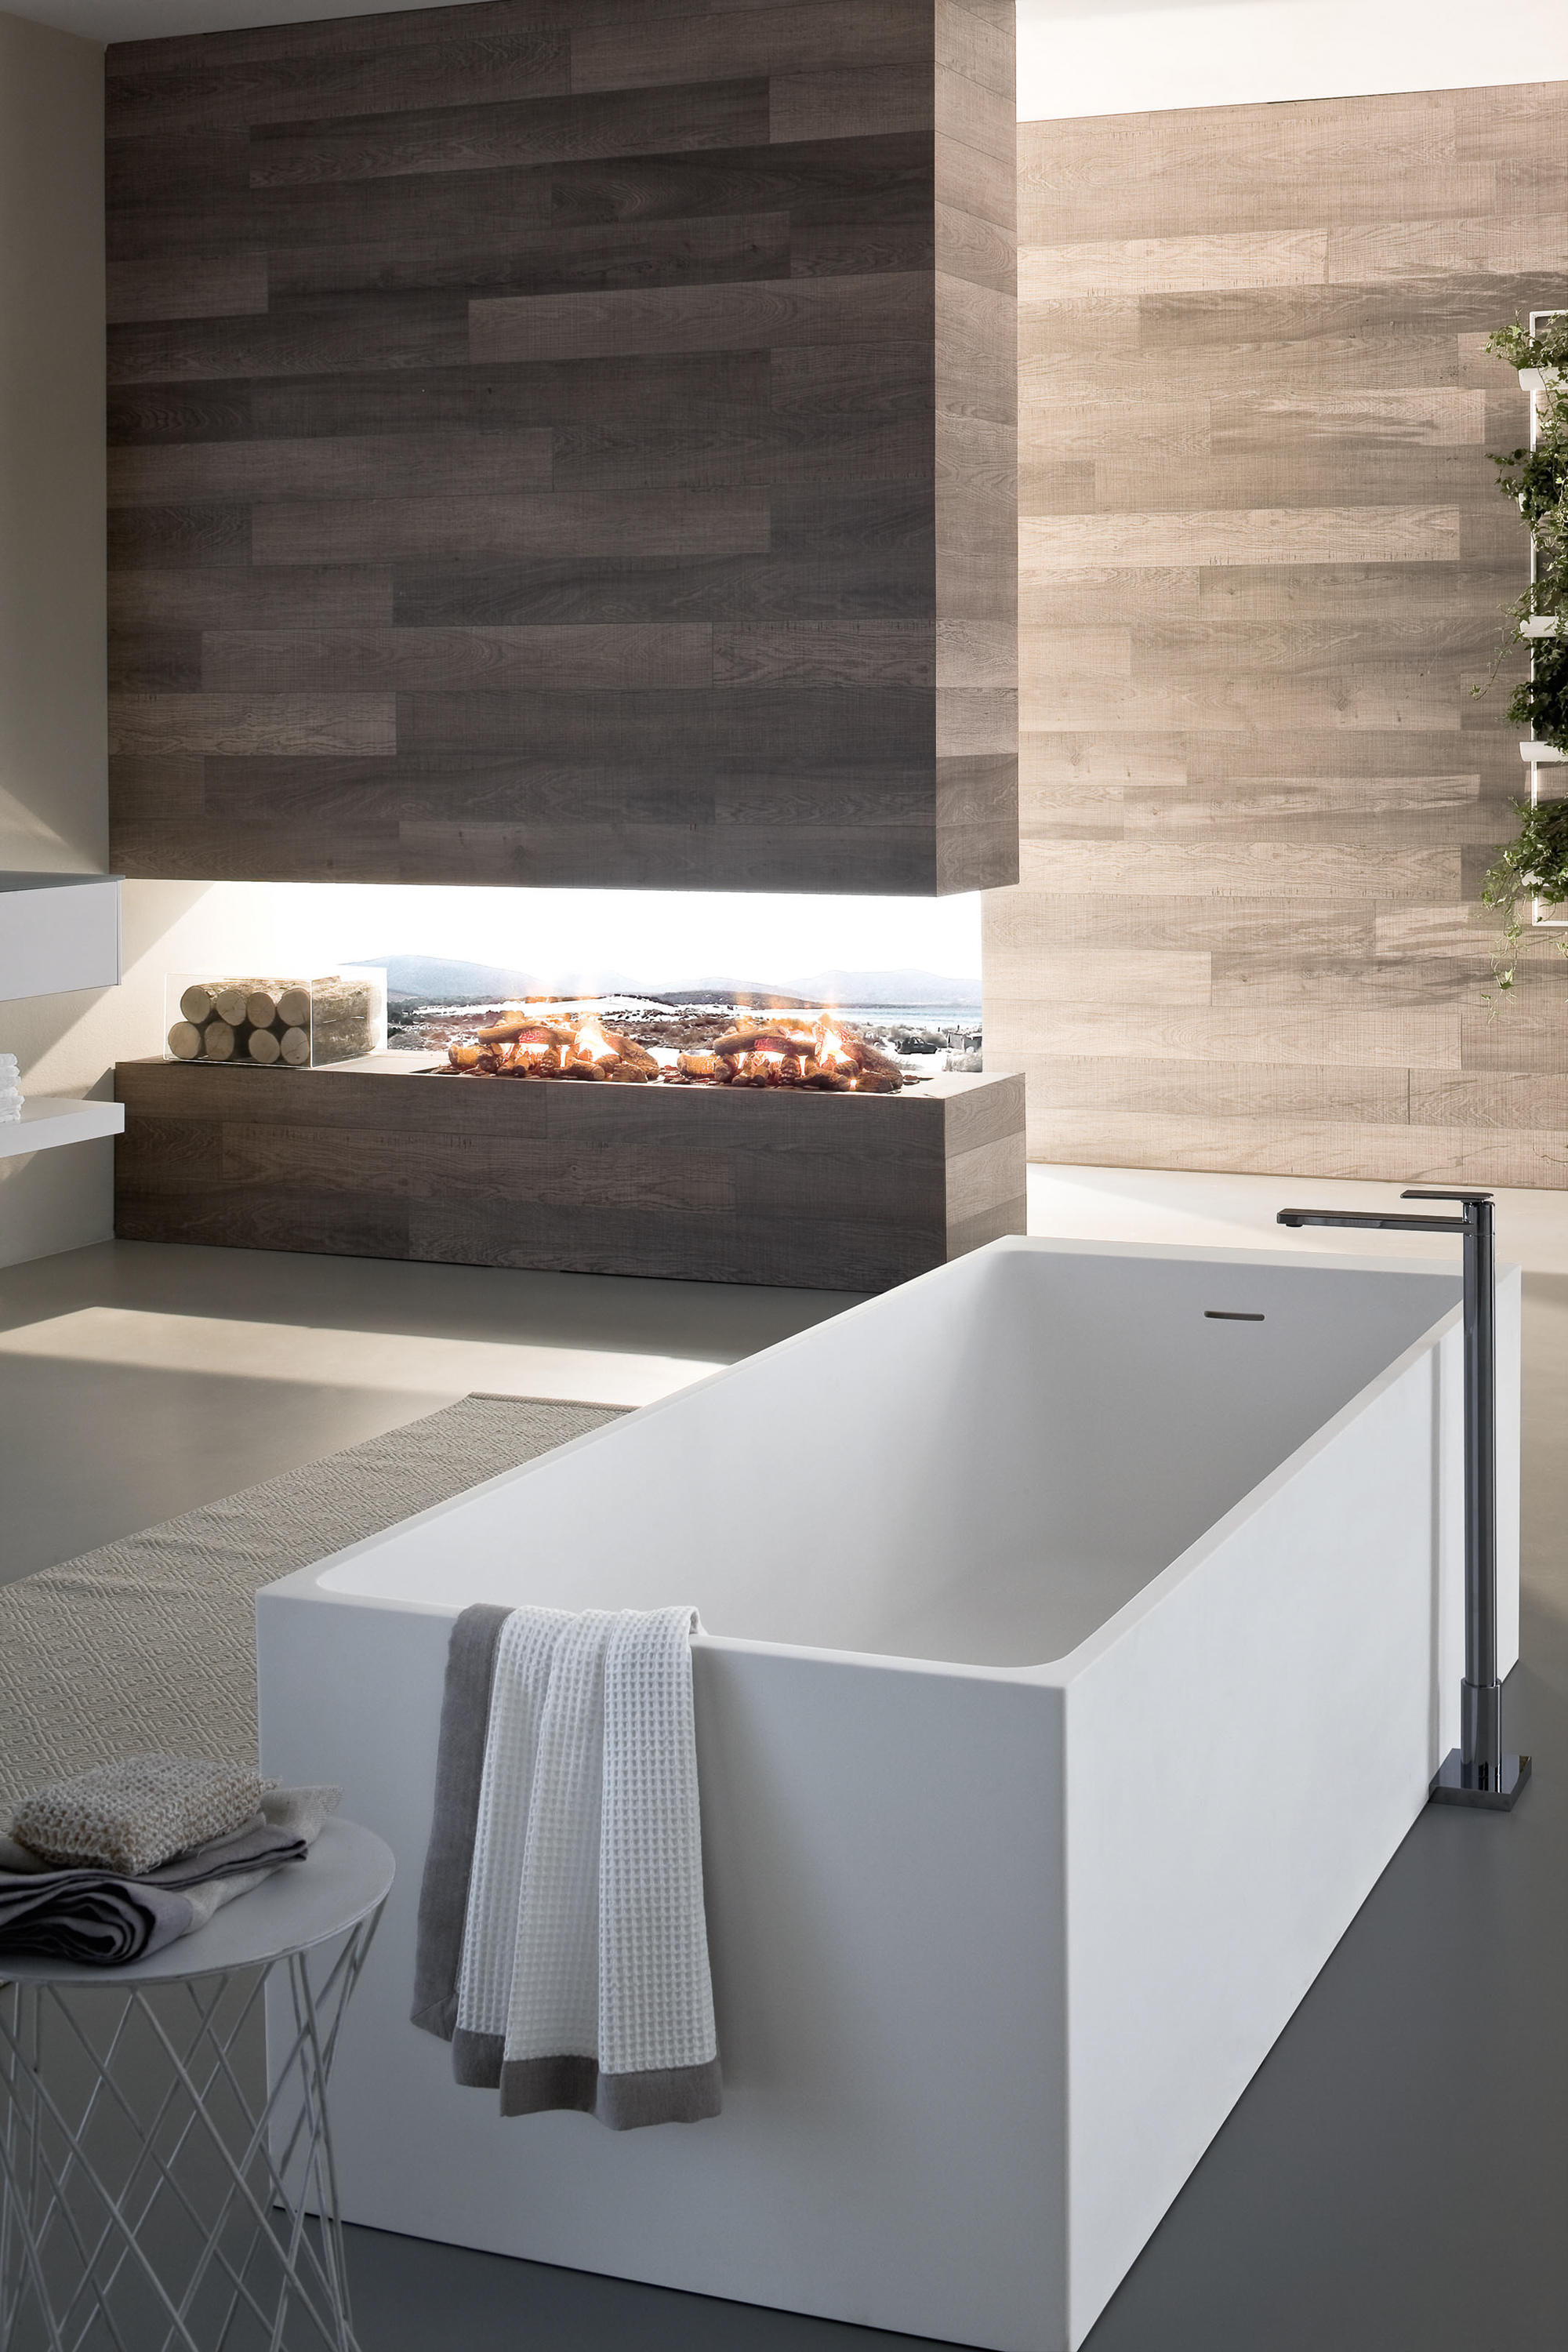 BATHTUBE SQUARE - Bathtubs from Idea Group | Architonic